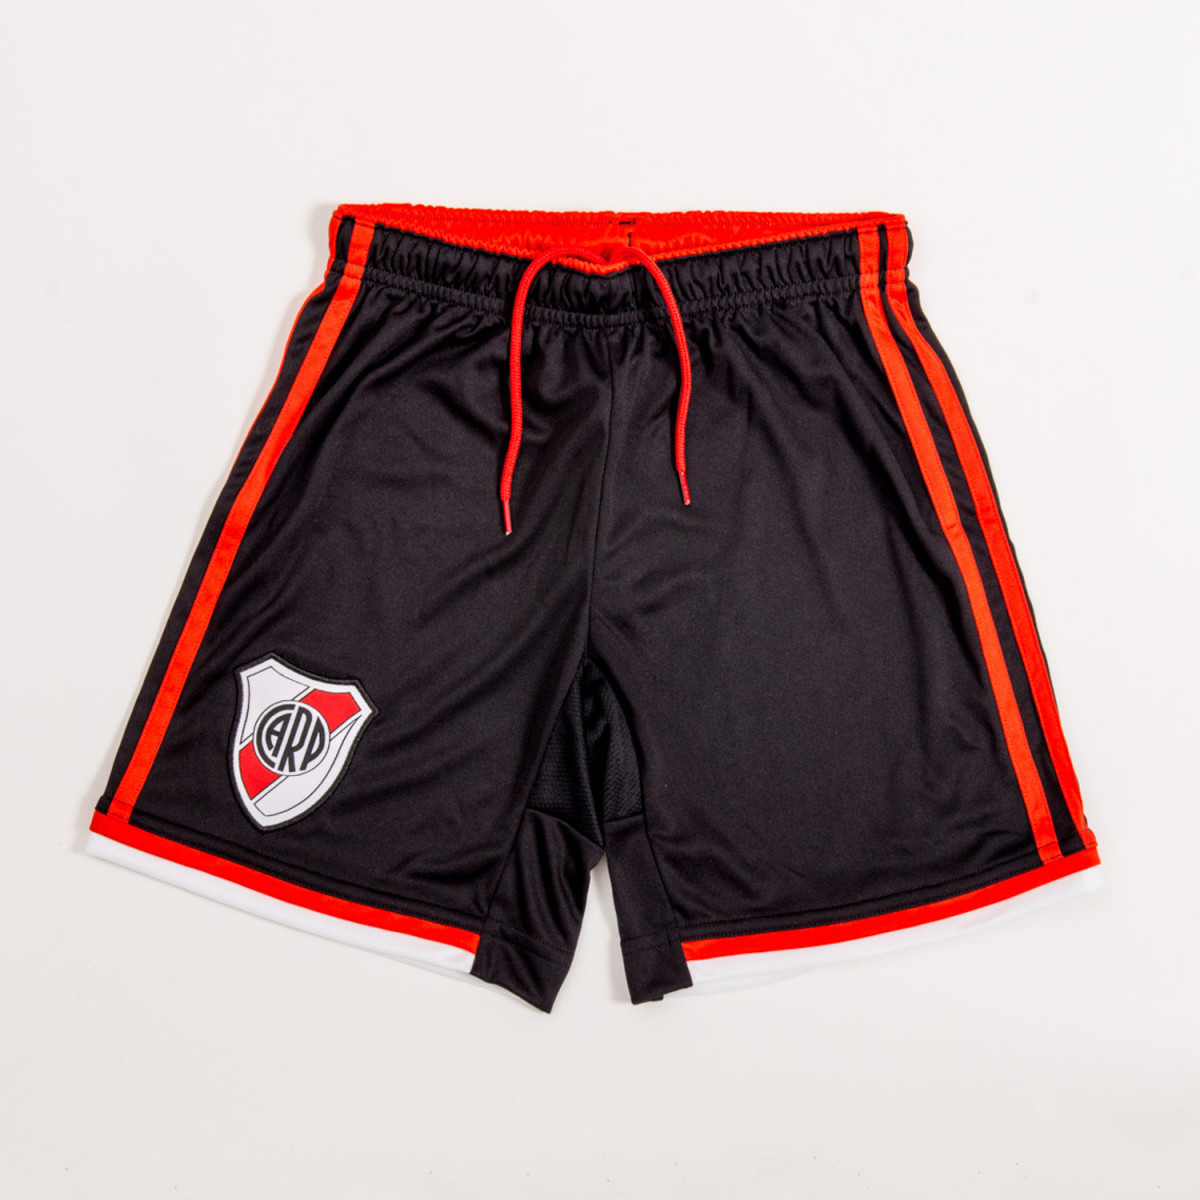 SHORT ADIDAS RIVER PLATE JR 2015